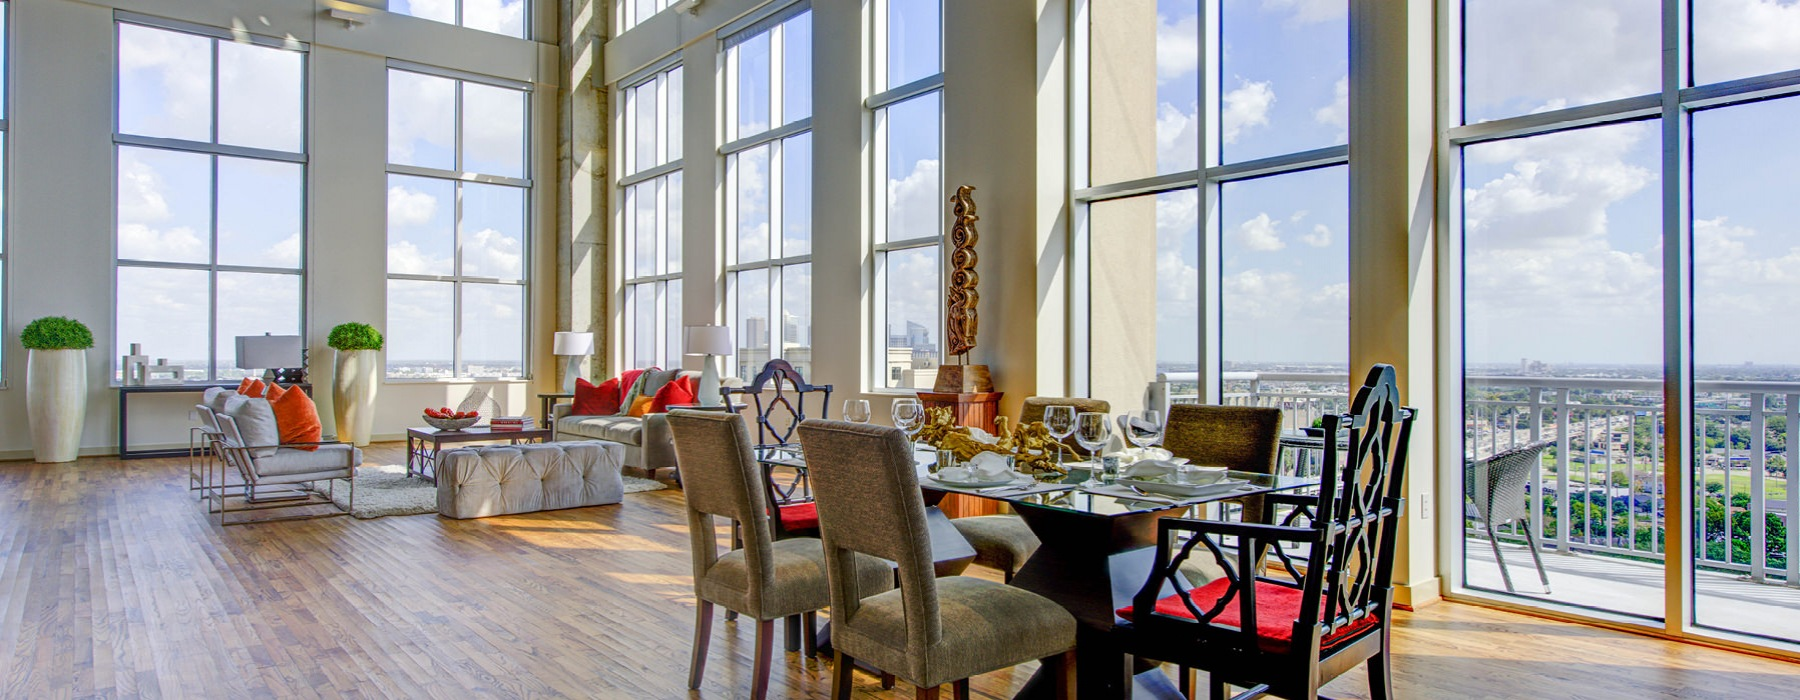 humongous living room and dining area with floor-to-ceiling windows